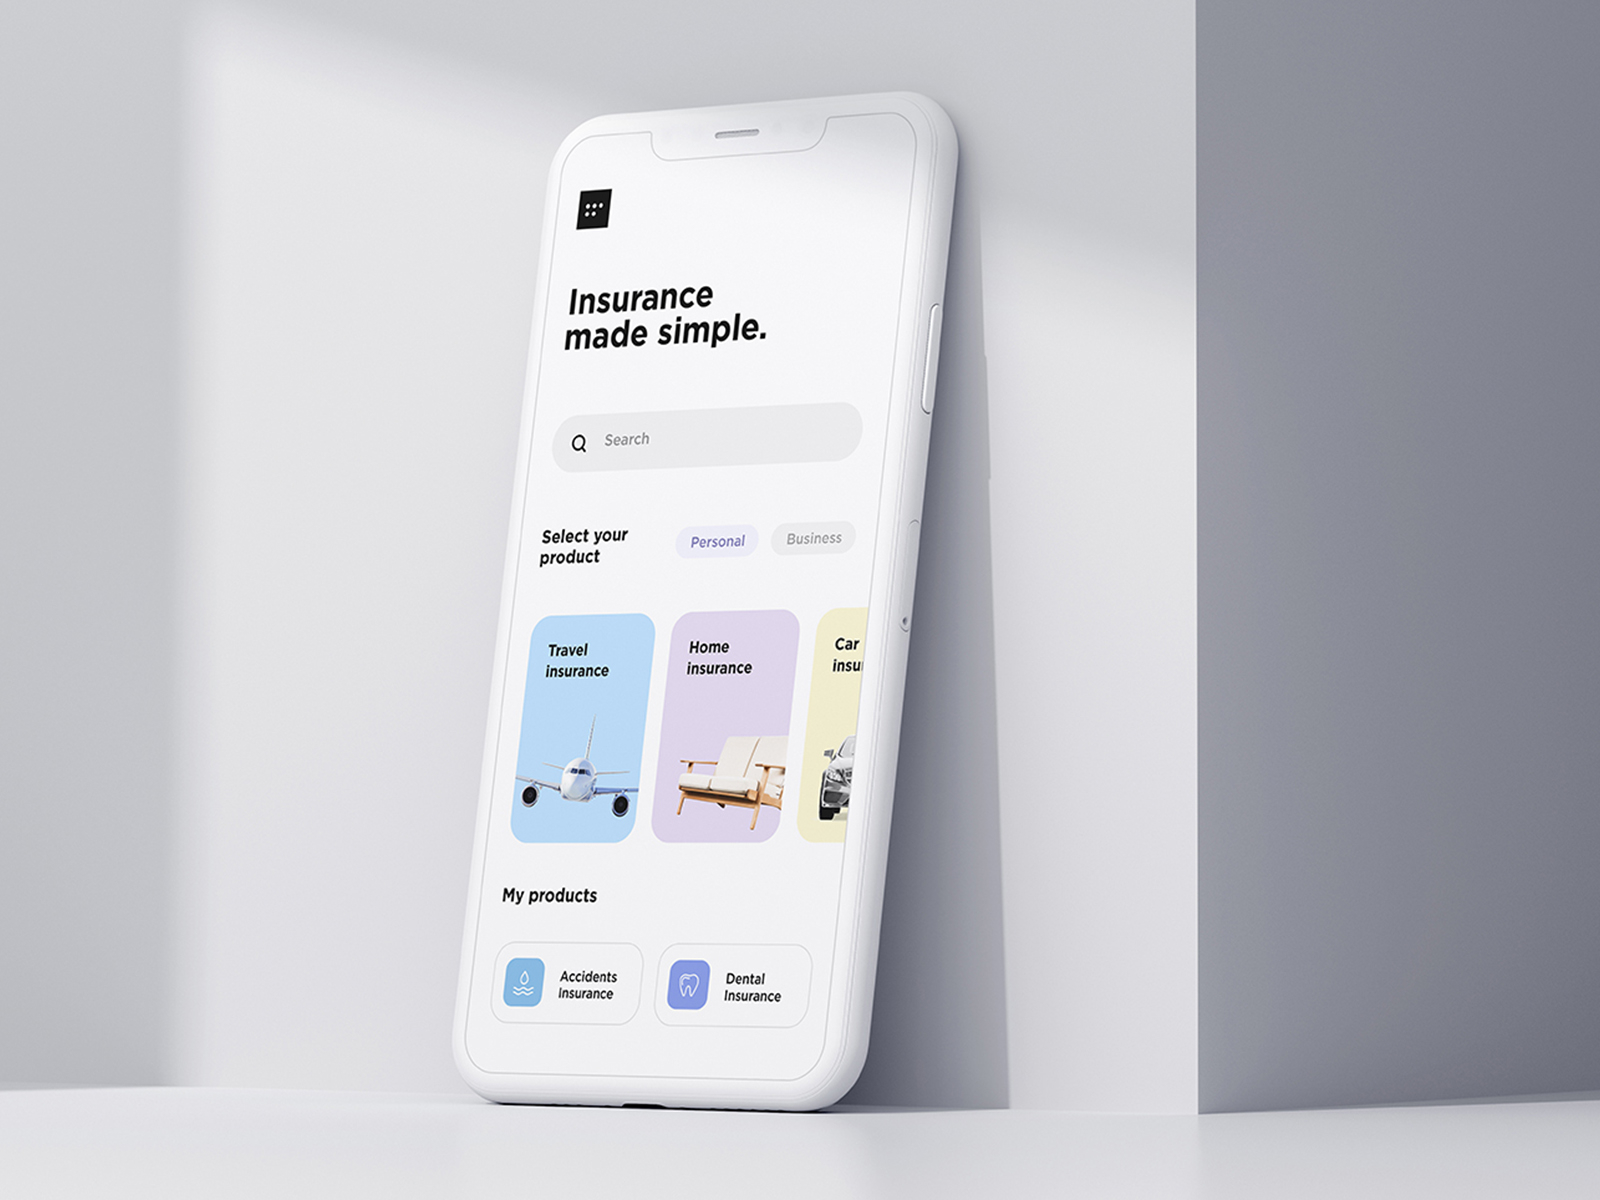 Insurance Marketplace Ios App Saas By Dmytro Lets On Dribbble